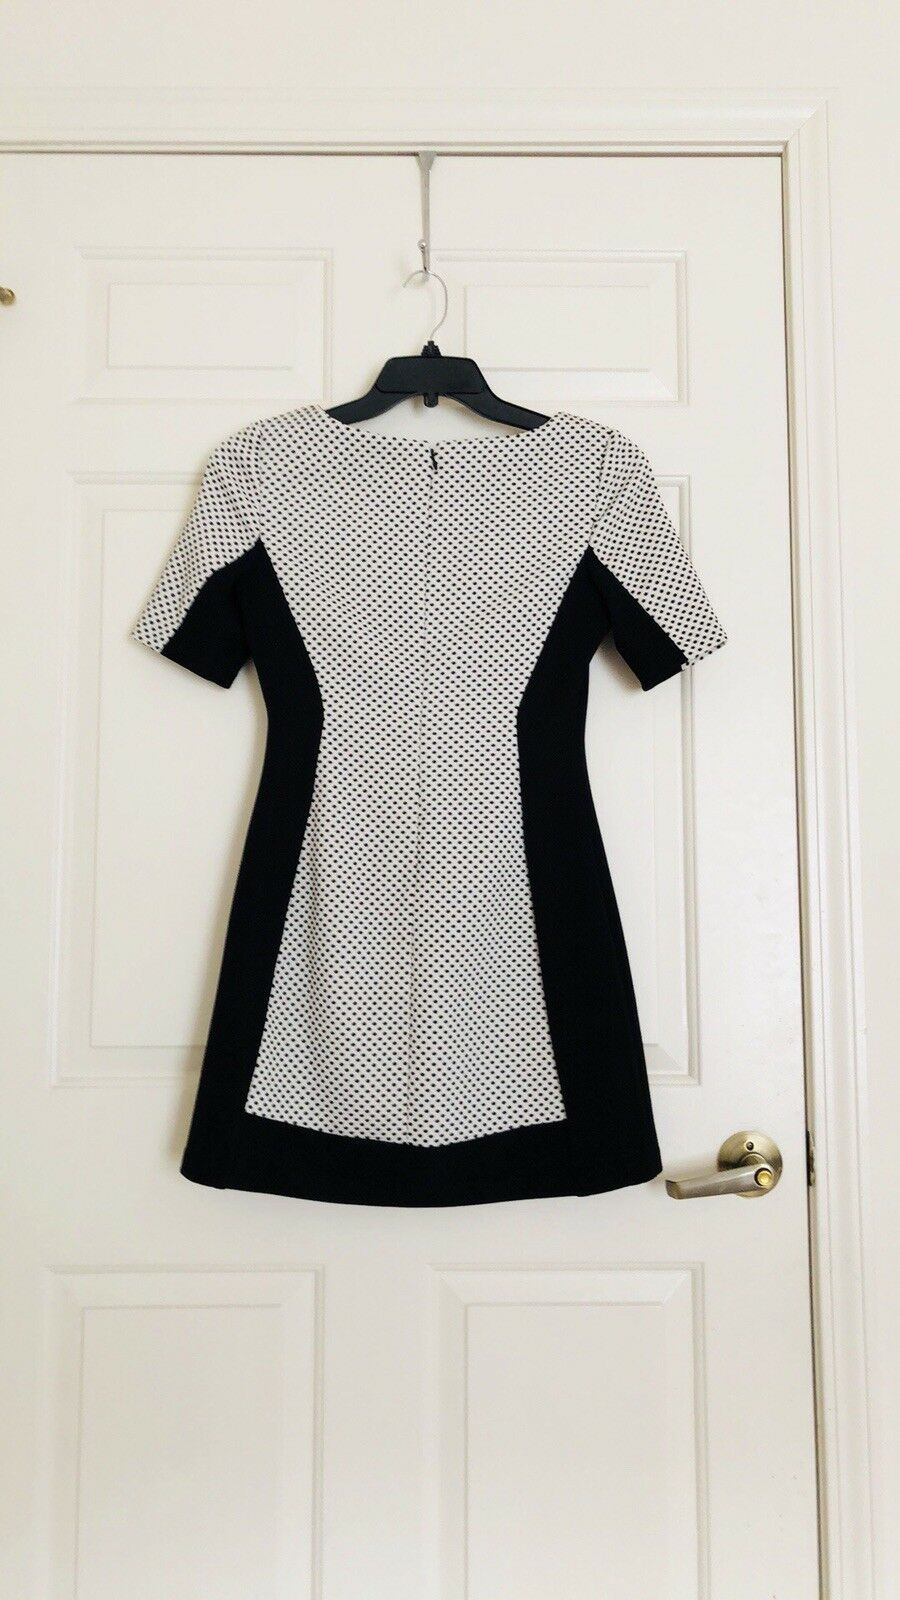 BCBG Dress - new without tags tags tags 720981